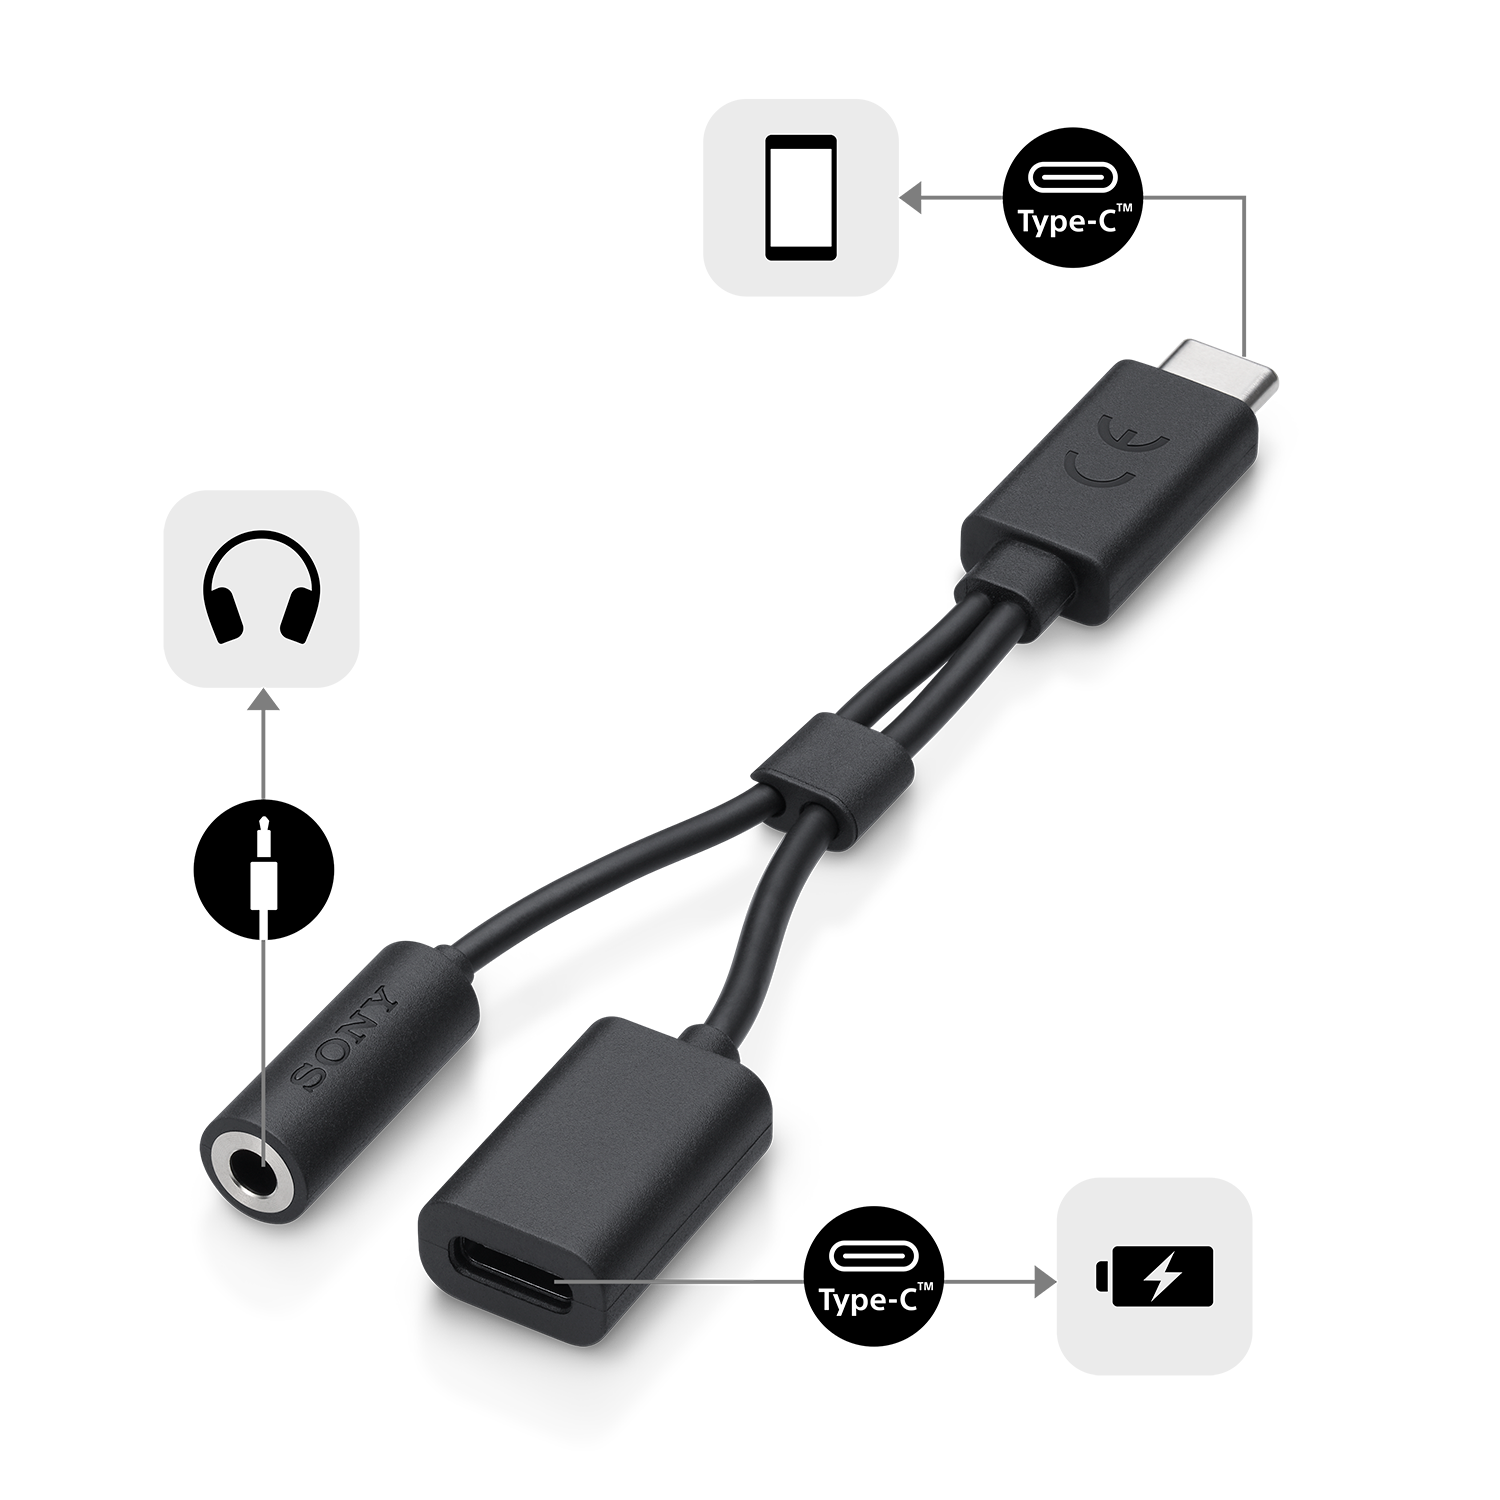 USB Type-C 2-in-1 Cable, , product-image